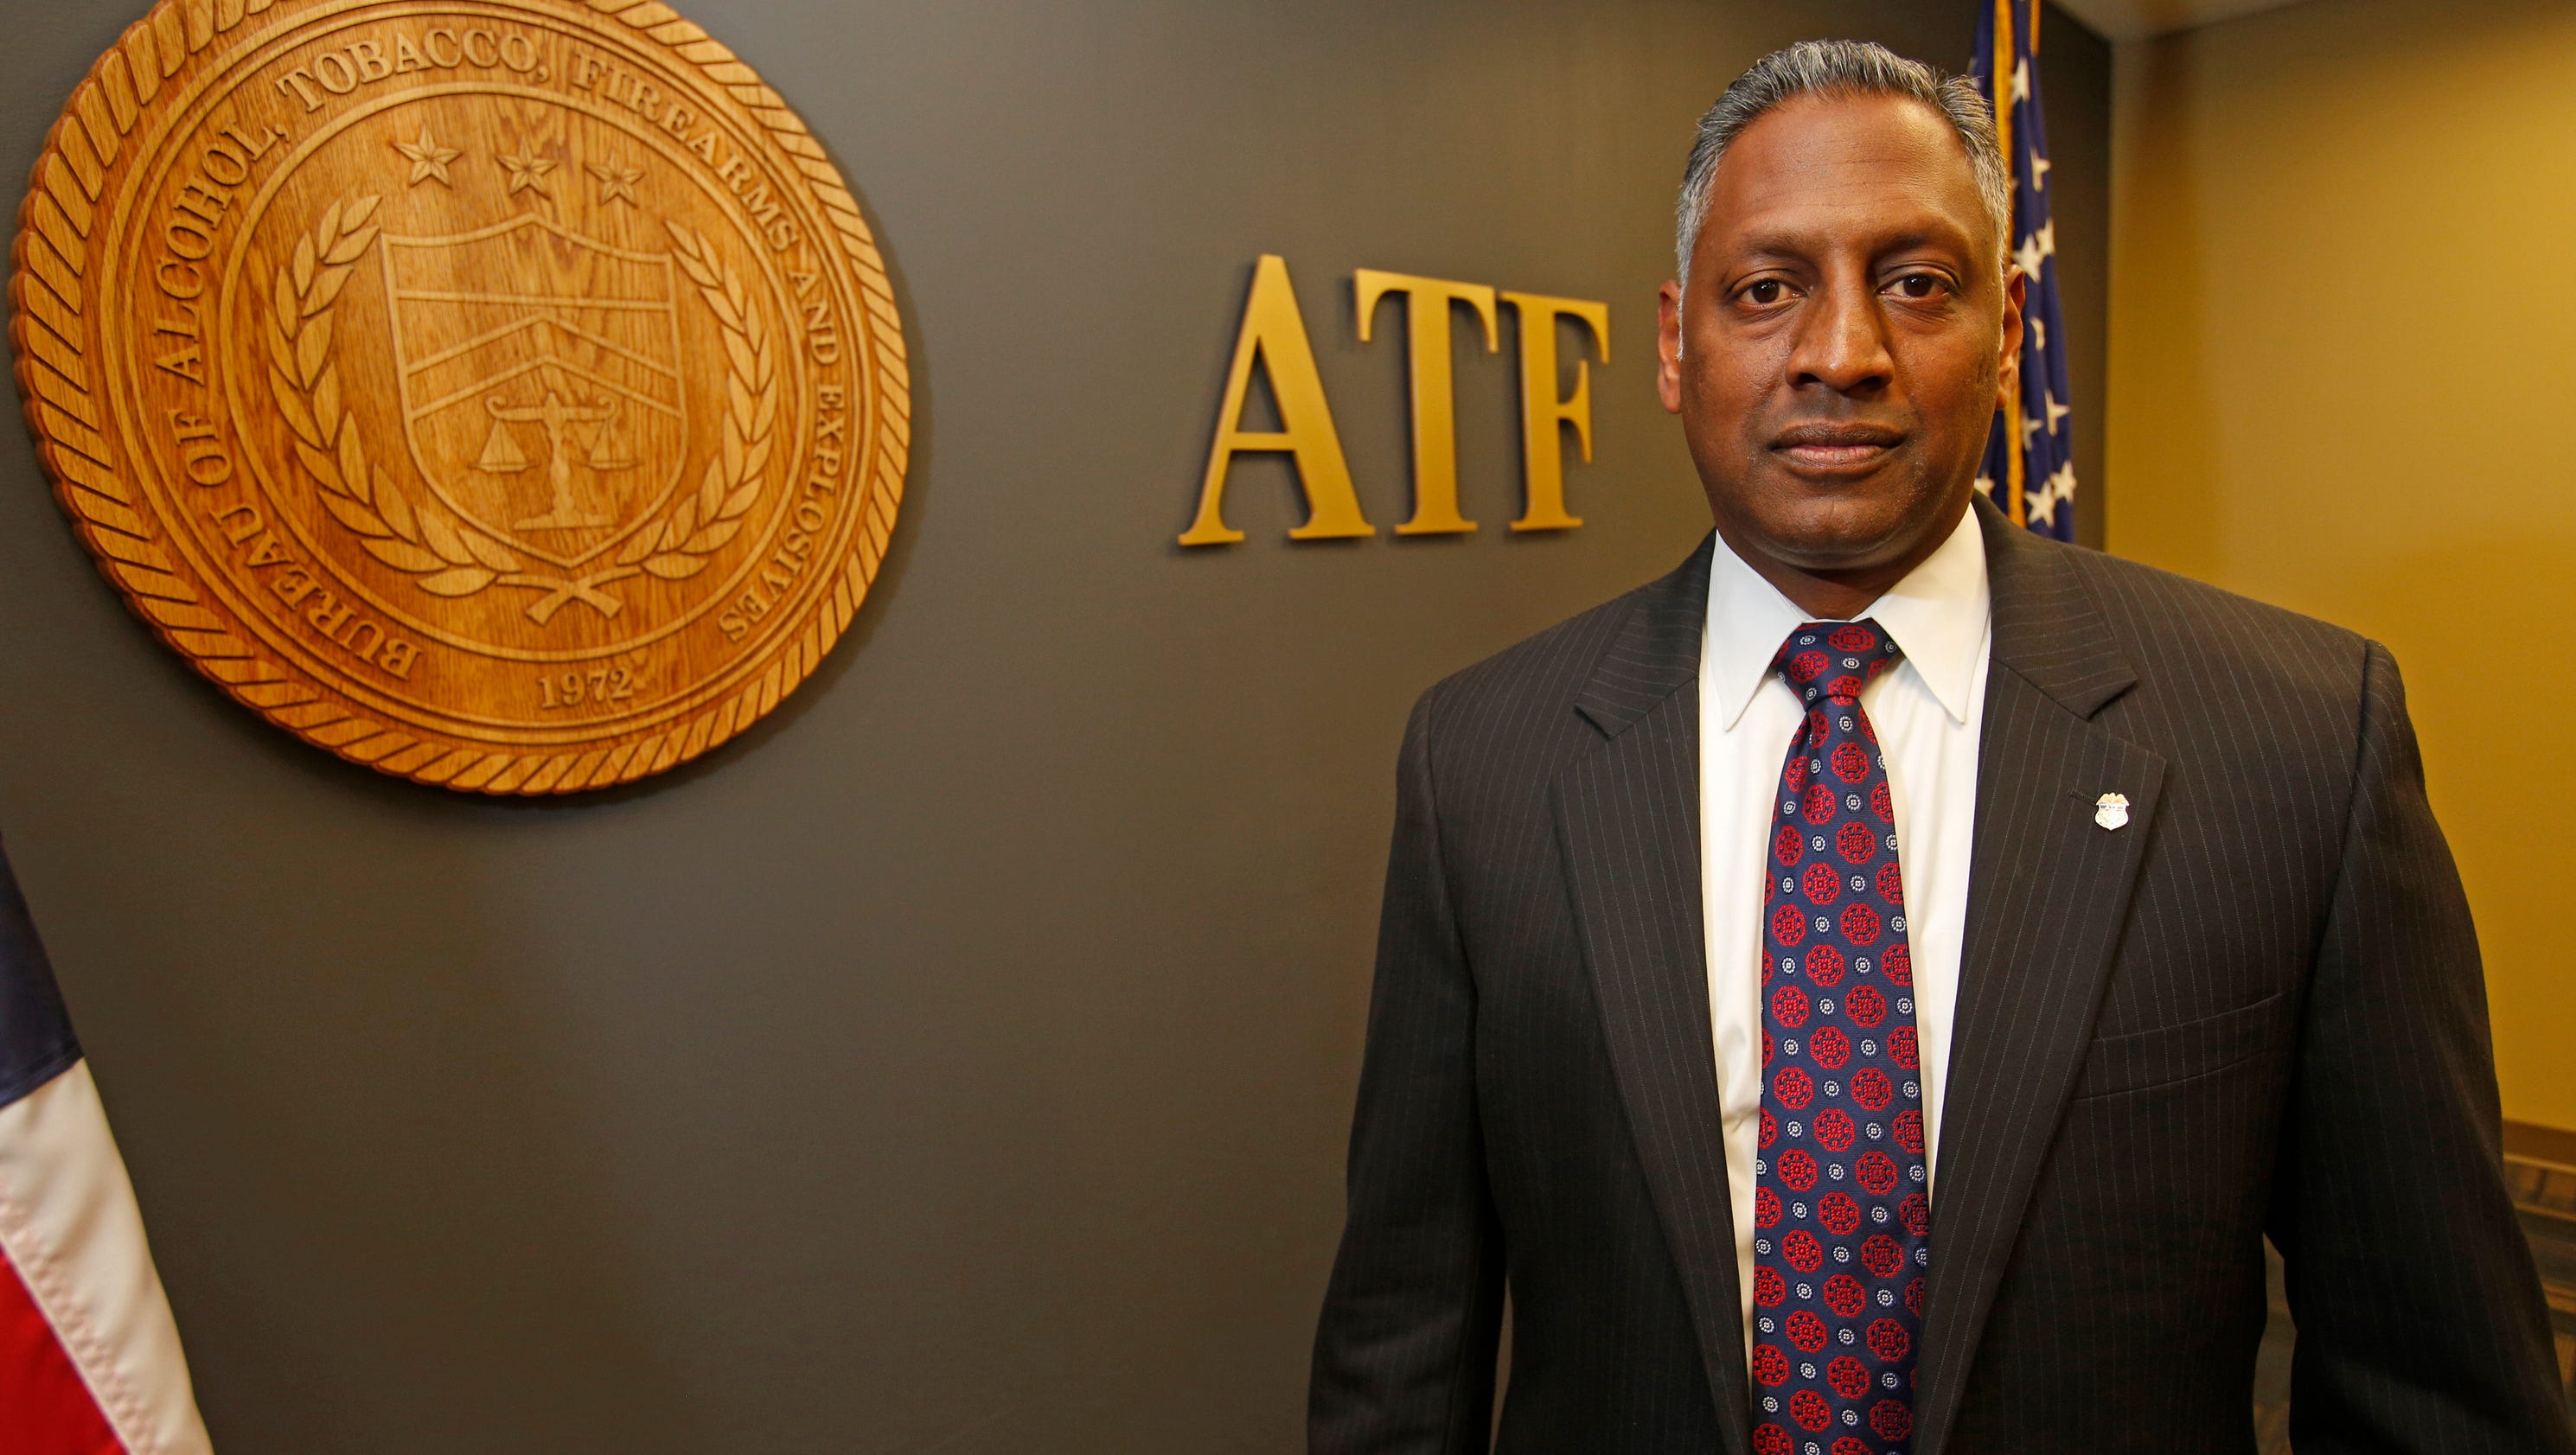 Ashan Benedict Yonkers Native Comes Home To Top Atf Job